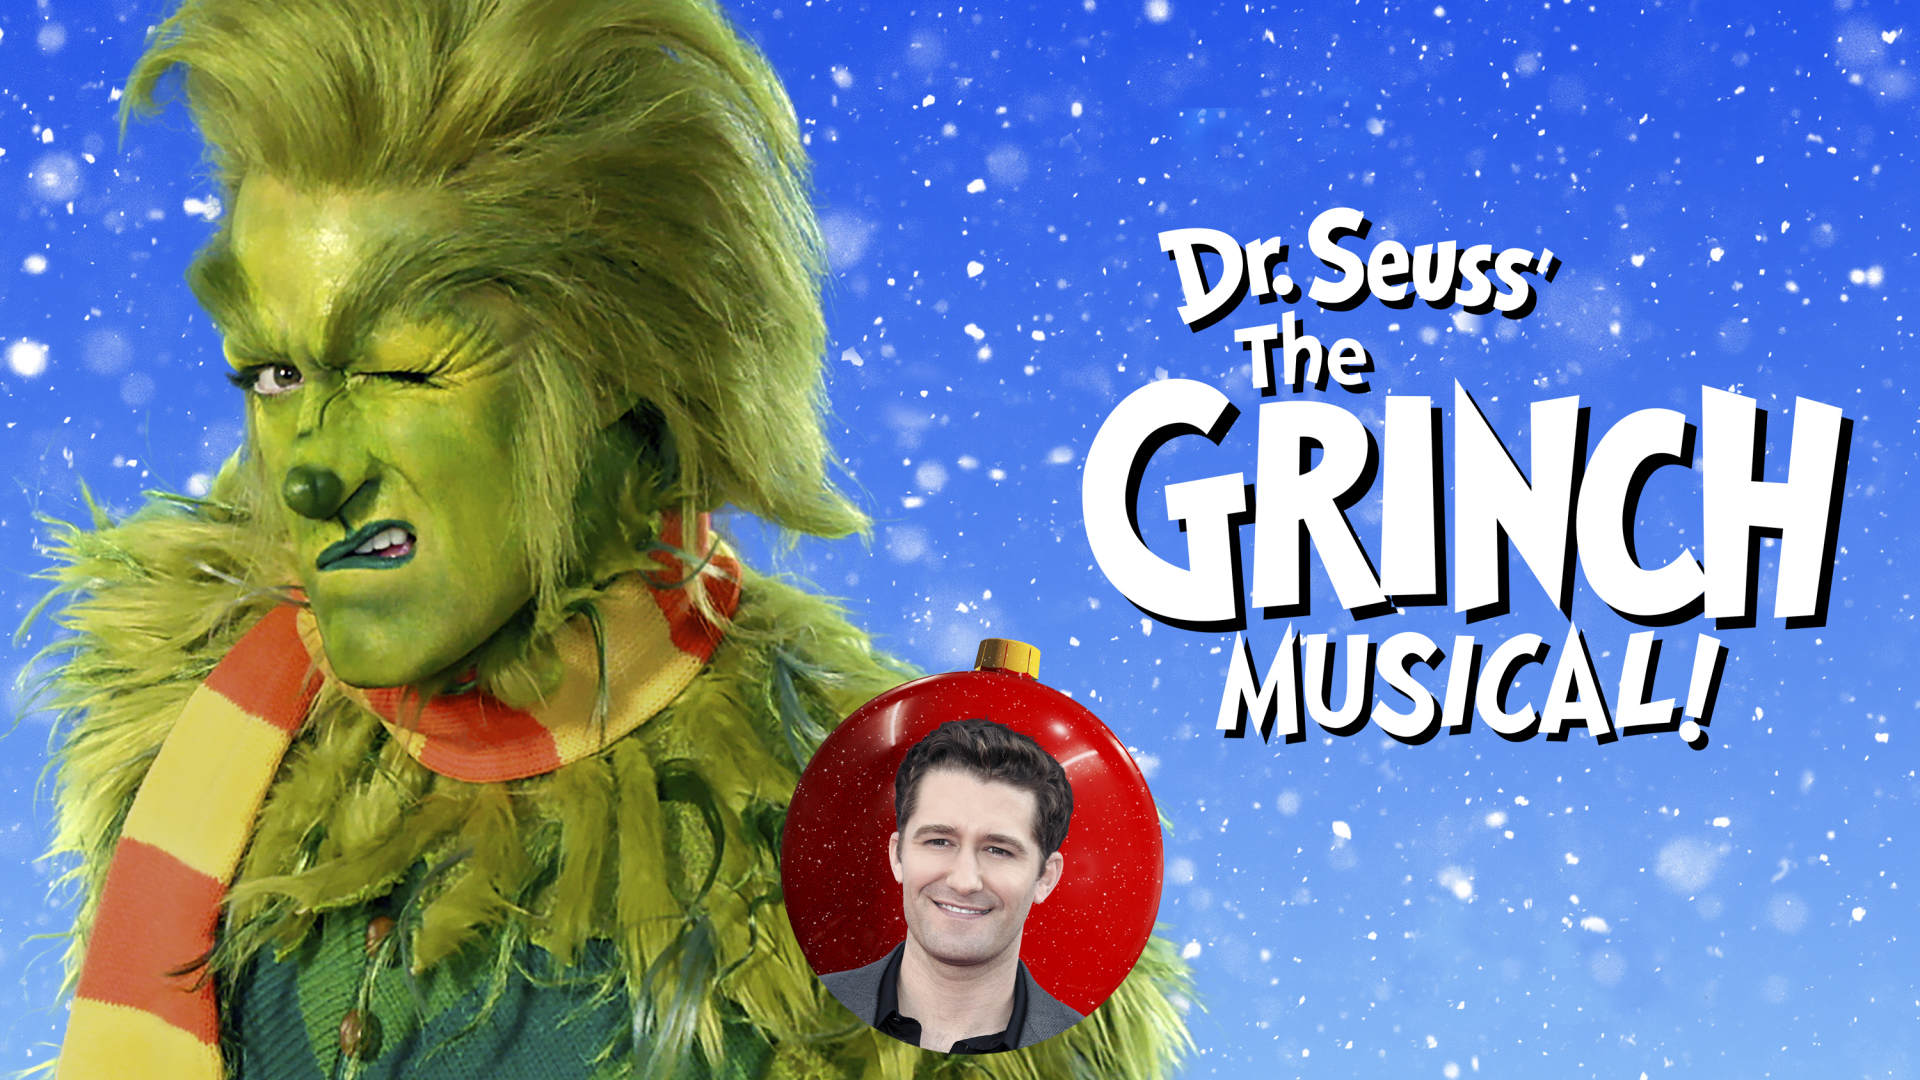 Dr Seuss The Grinch Musical